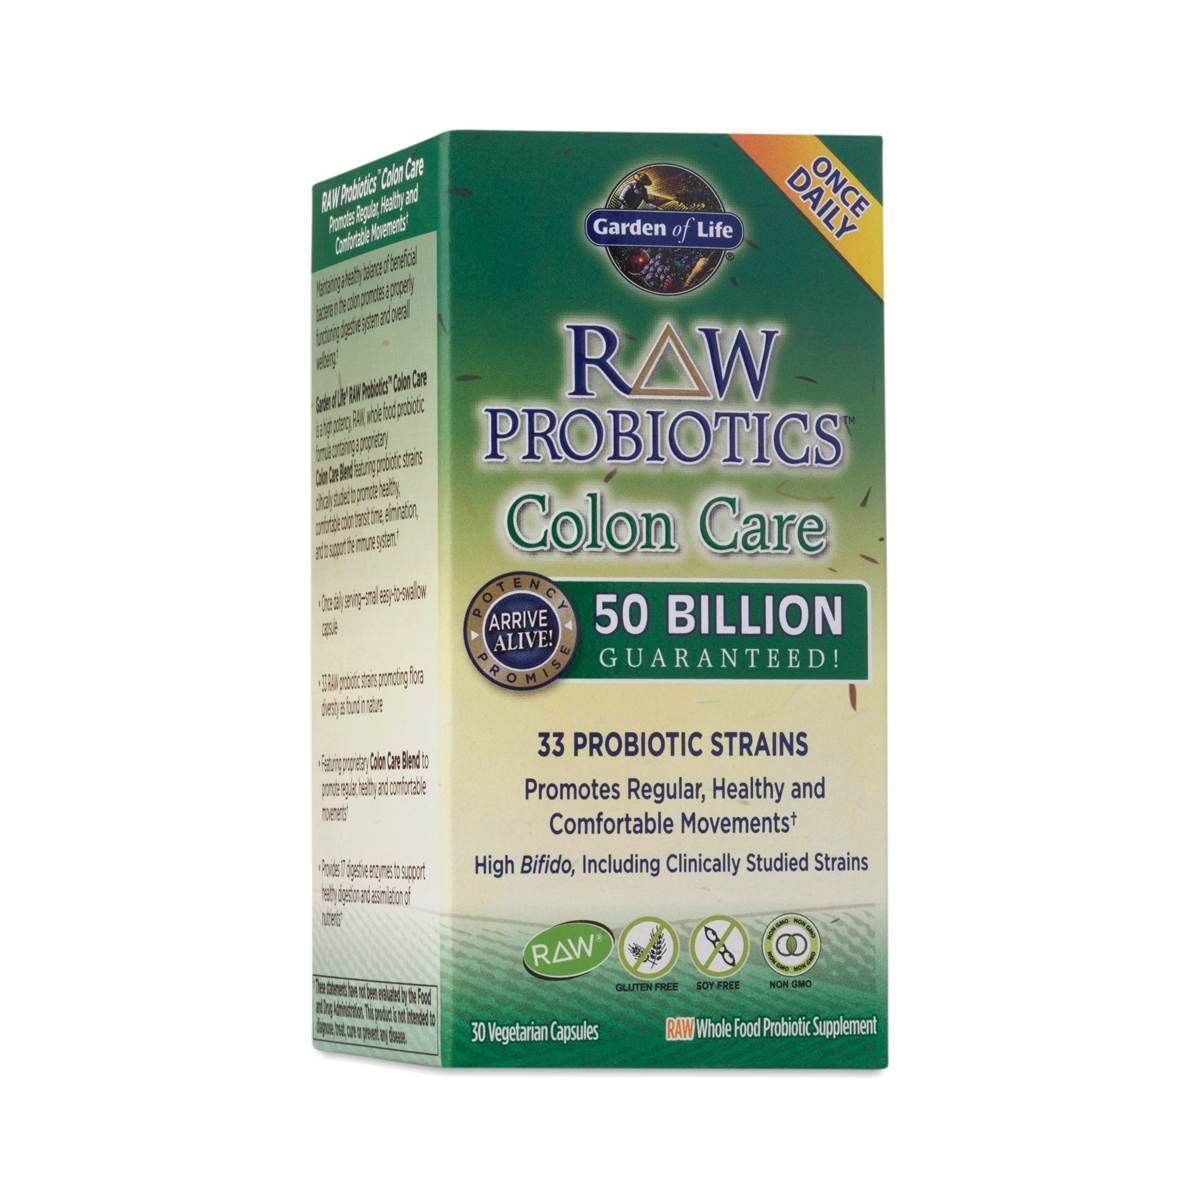 Raw probiotics colon care by garden of life thrive market for Garden of life raw probiotics kids